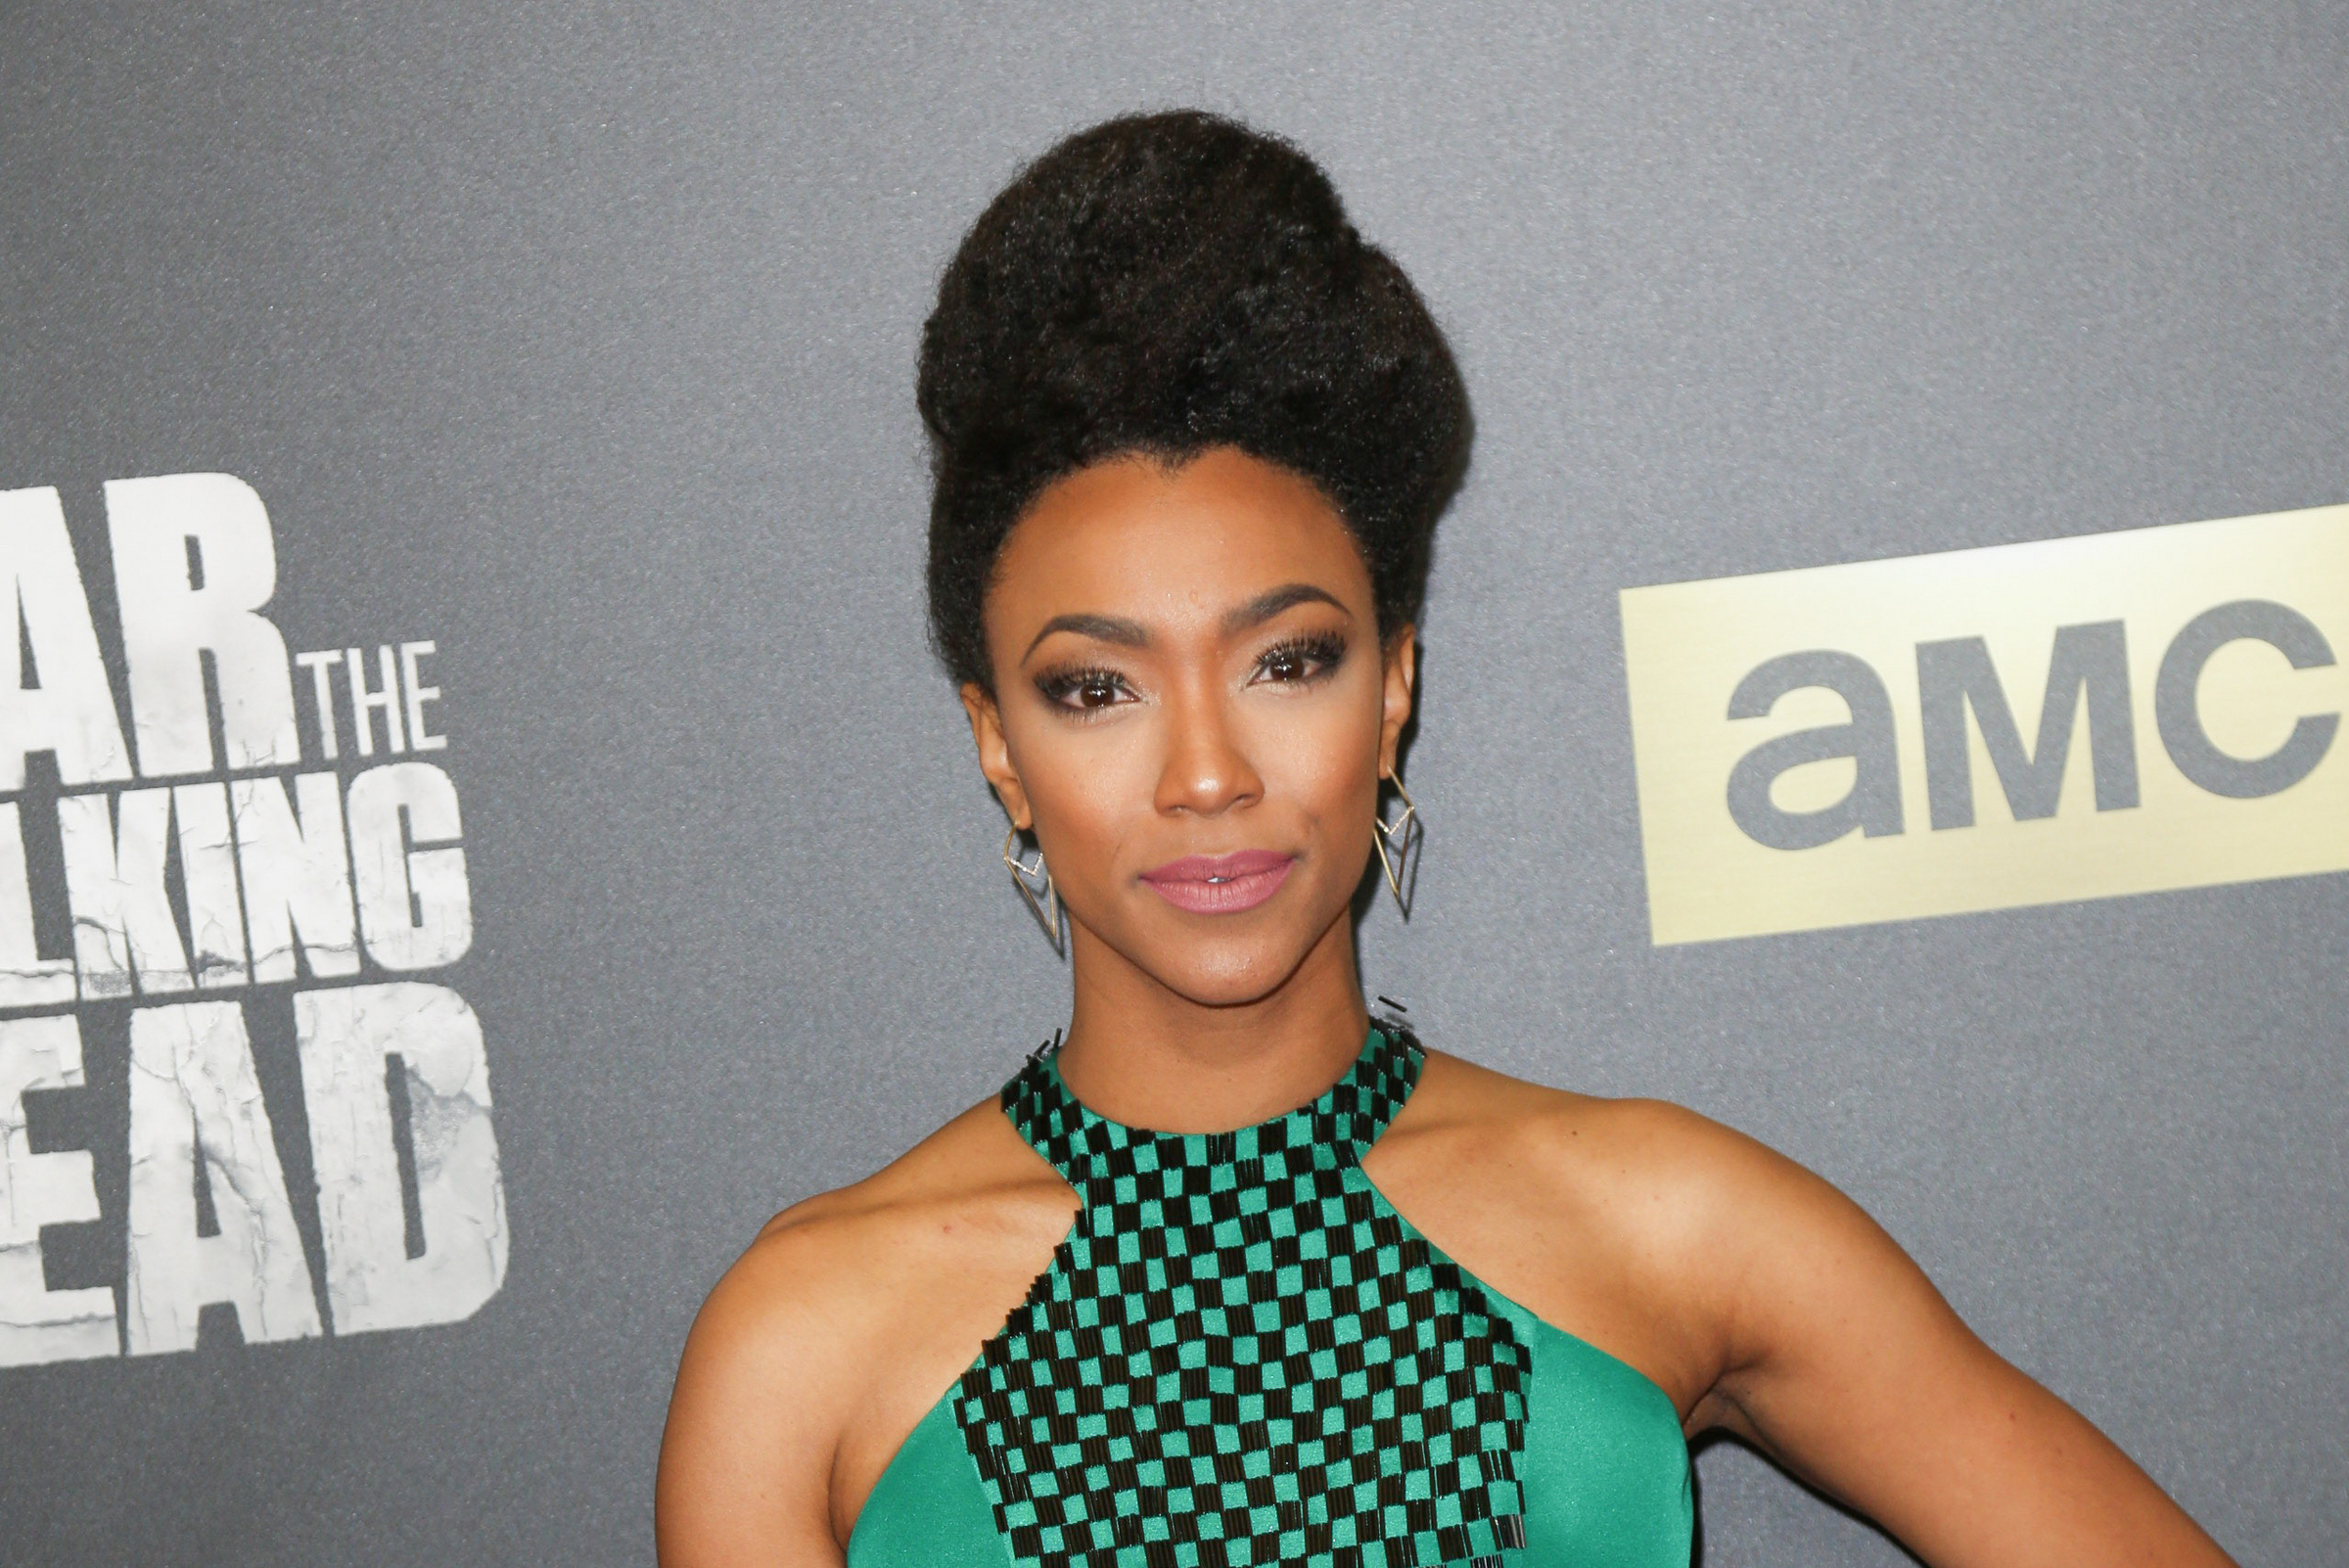 "03/29/2016 - Sonequa Martin-Green - ""Fear the Walking Dead"" TV Series Season 2 Los Angeles Premiere - Arrivals - Cinemark Playa Vista and XD, 12746 W Jefferson Boulevard - Los Angeles, CA, USA - Keywords: Vertical, Portrait, Photography, Television Series Premiere, Film Industry, Red Carpet Event, Arts Culture and Entertainment, Arrival, Attending, Person, People, Celebrity, Celebrities, Topix, Bestof, Drama, Horror, Zombies, Apocalypse, AMC, California Orientation: Portrait Face Count: 1 - False - Photo Credit: Guillermo Proano / PR Photos - Contact (1-866-551-7827) - Portrait Face Count: 1"